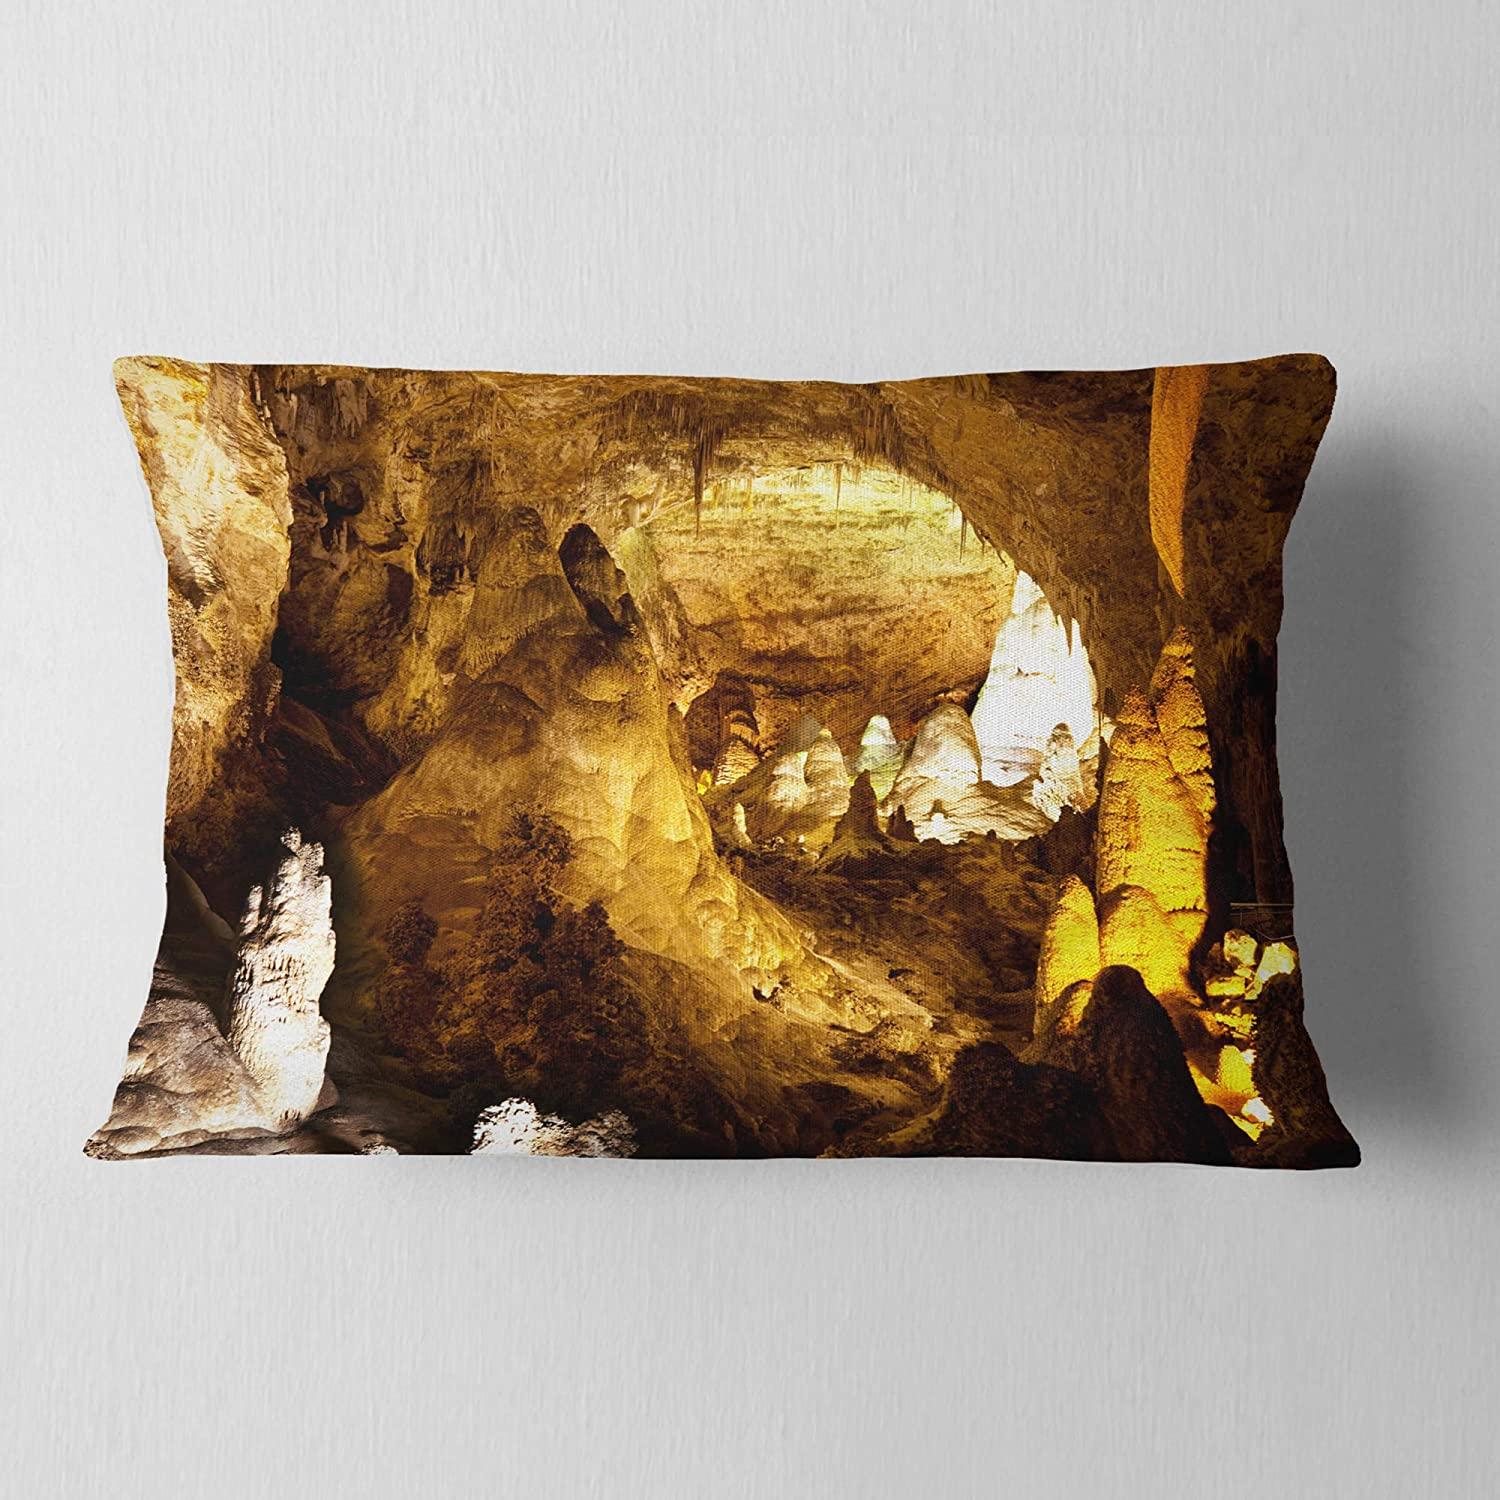 Sofa Throw Pillow 12 in Designart CU12588-12-20 Carlsbad Caverns National Park Landscape Printed Lumbar Cushion Cover for Living Room x 20 in in